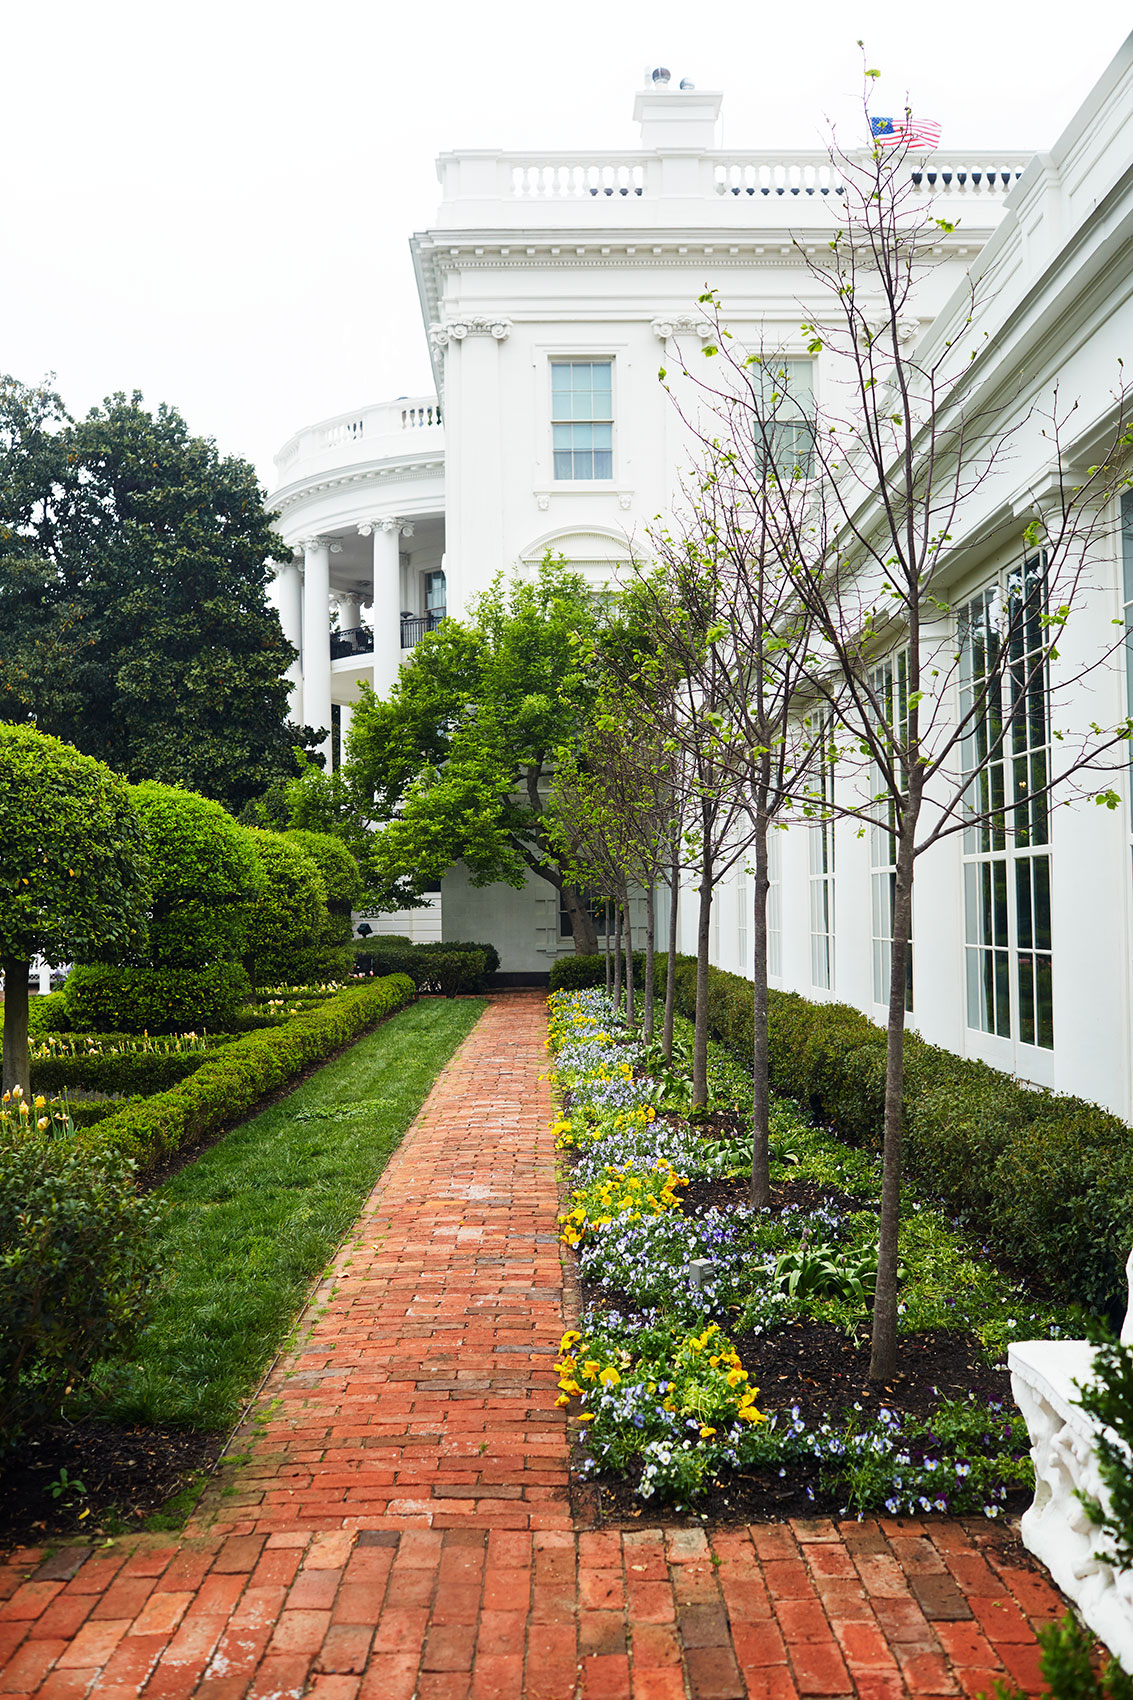 Kimberly_Genevieve_The_White_House_The_Everygirl_22